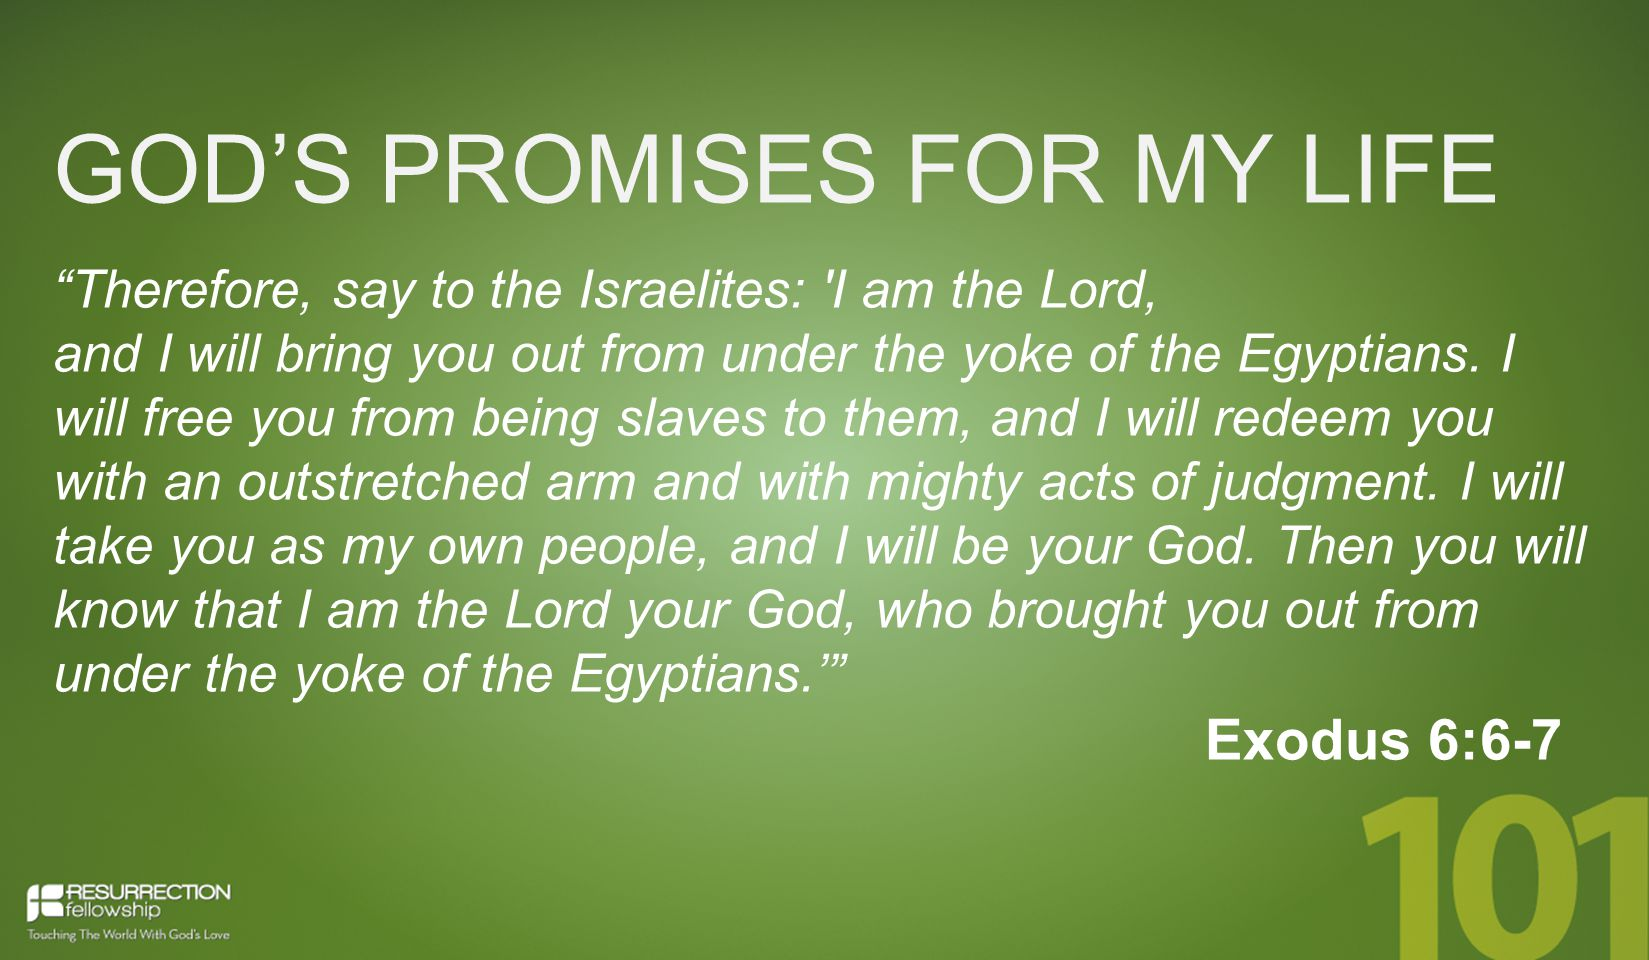 GOD'S PROMISES FOR MY LIFE Therefore, say to the Israelites: I am the Lord, and I will bring you out from under the yoke of the Egyptians.